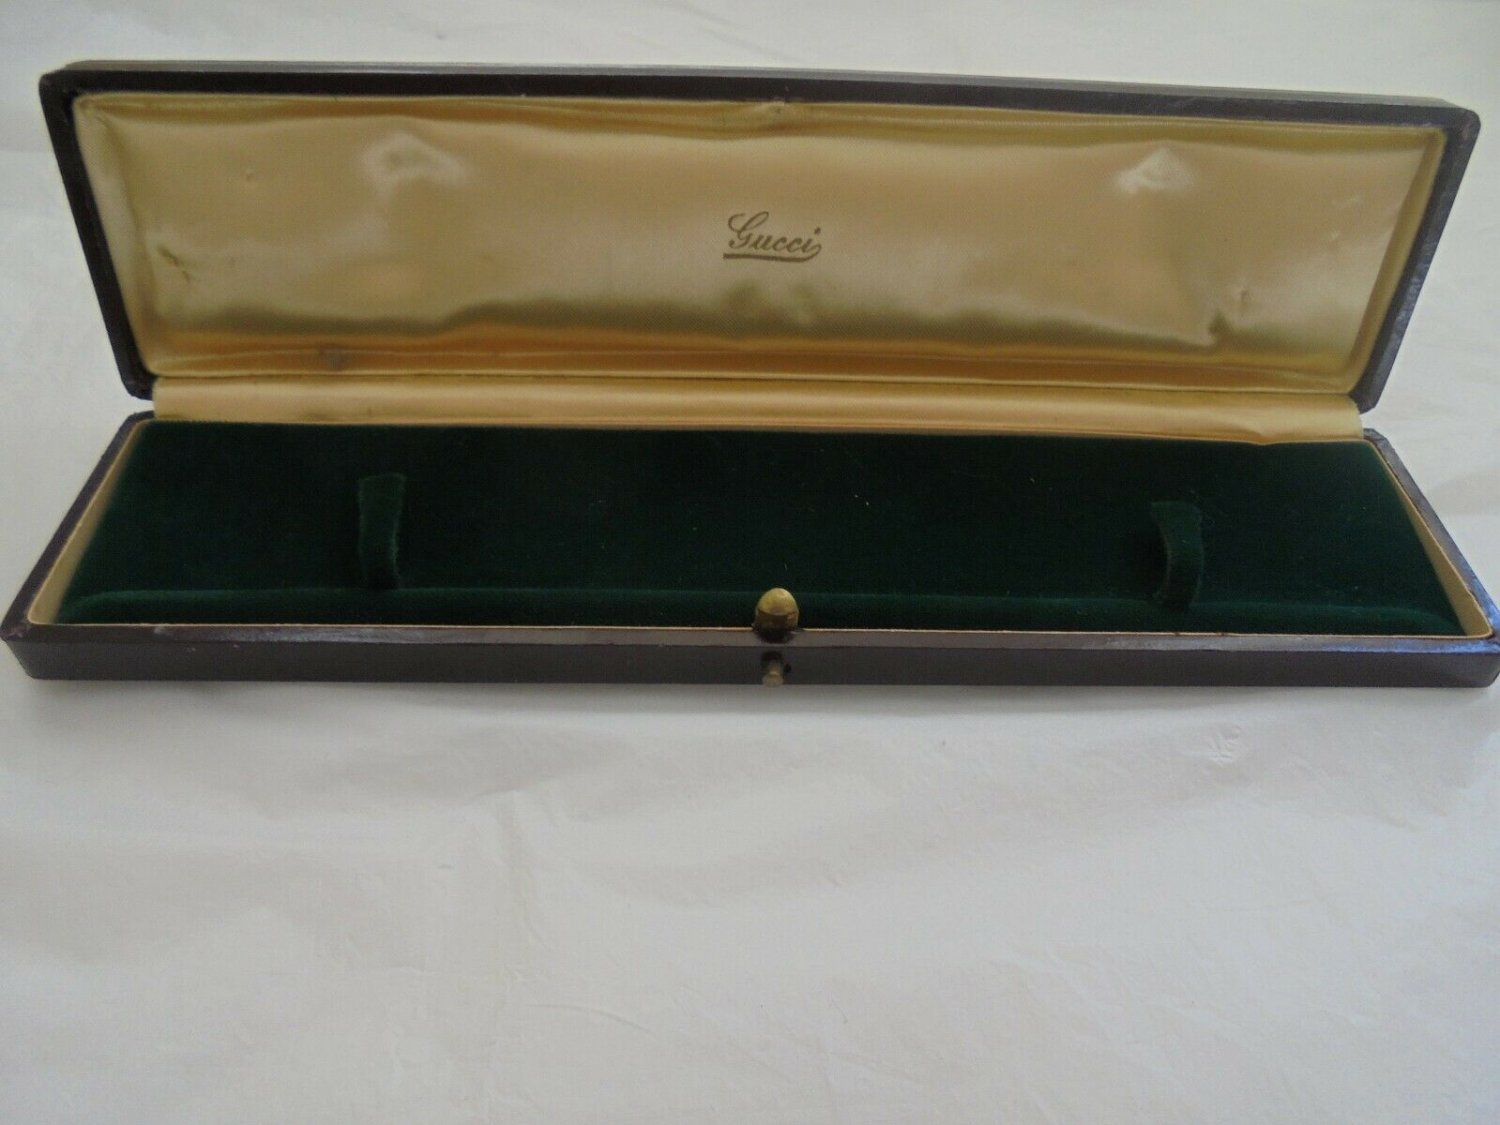 GUCCI jewelry box for BRACELET or WATCH or Jewels Original 1960s